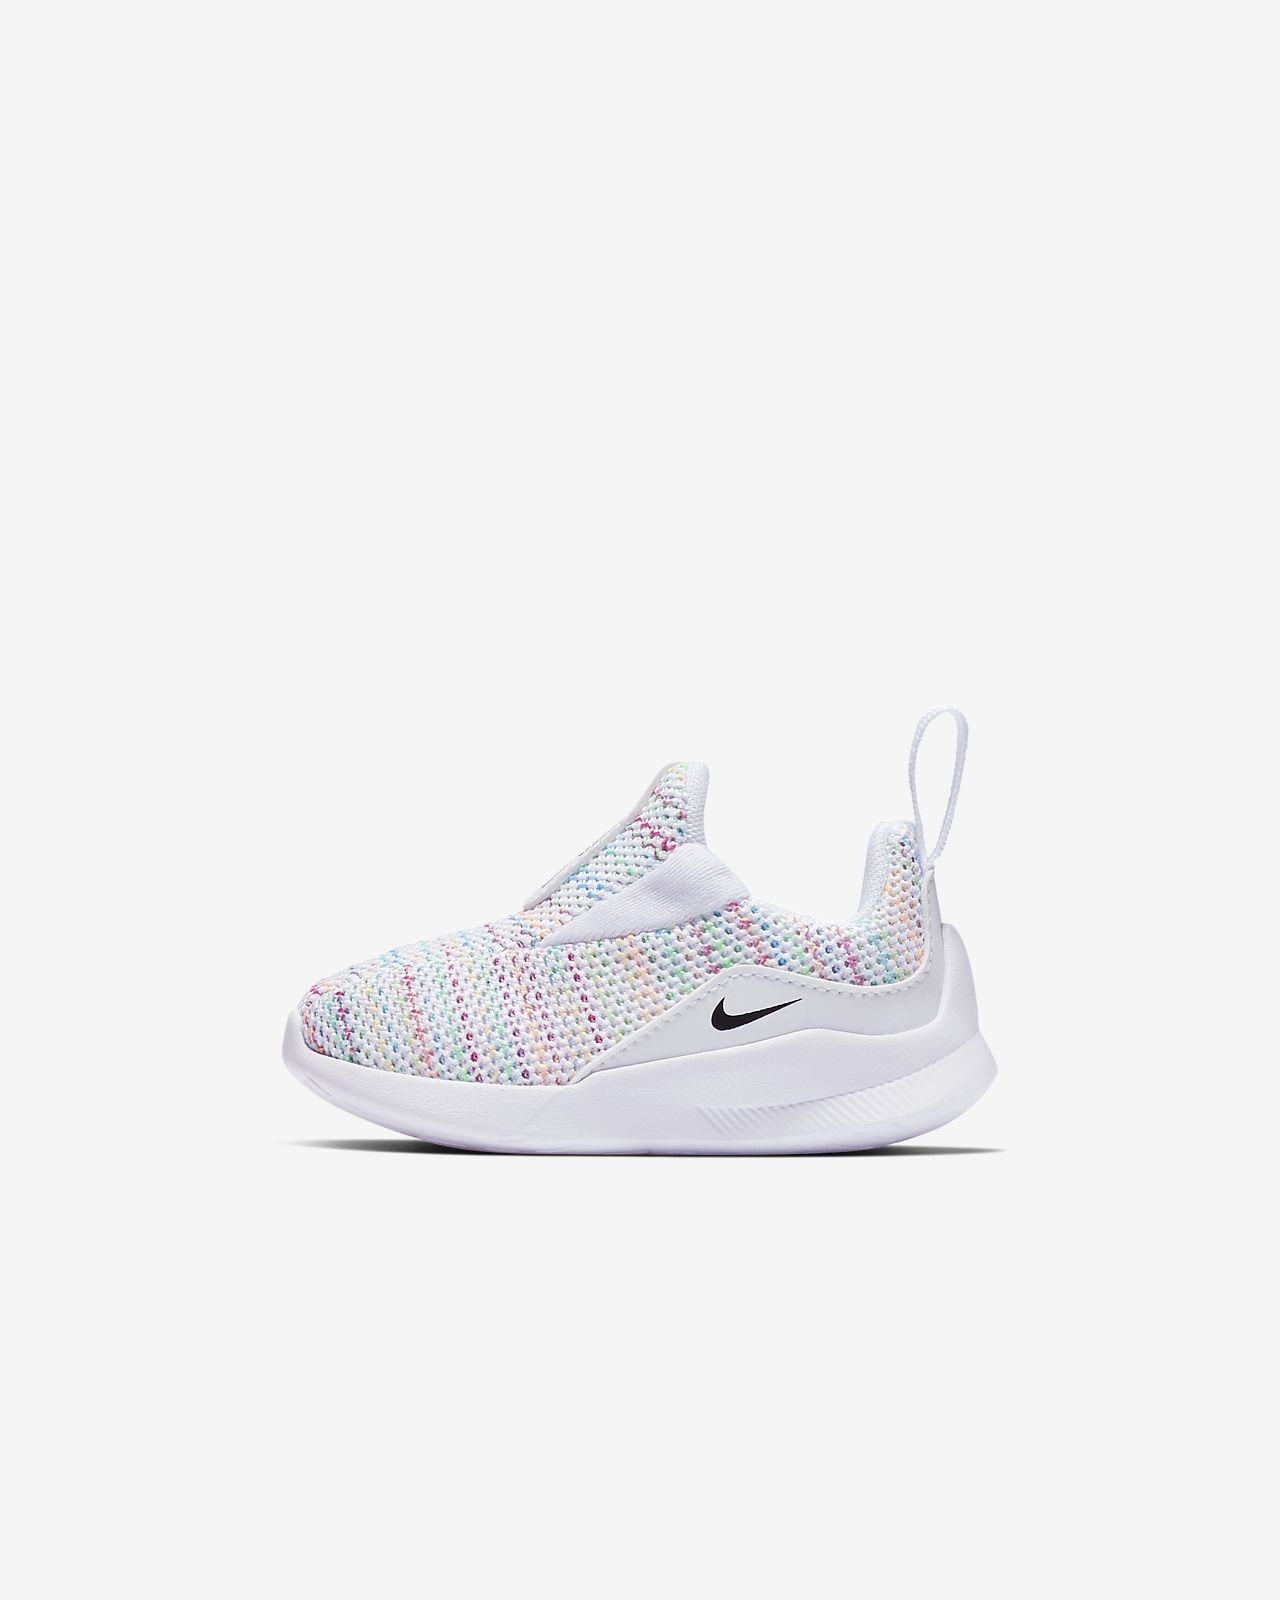 76e74254e2 Nike Viale Space Dye Infant/Toddler Shoe. Nike.com